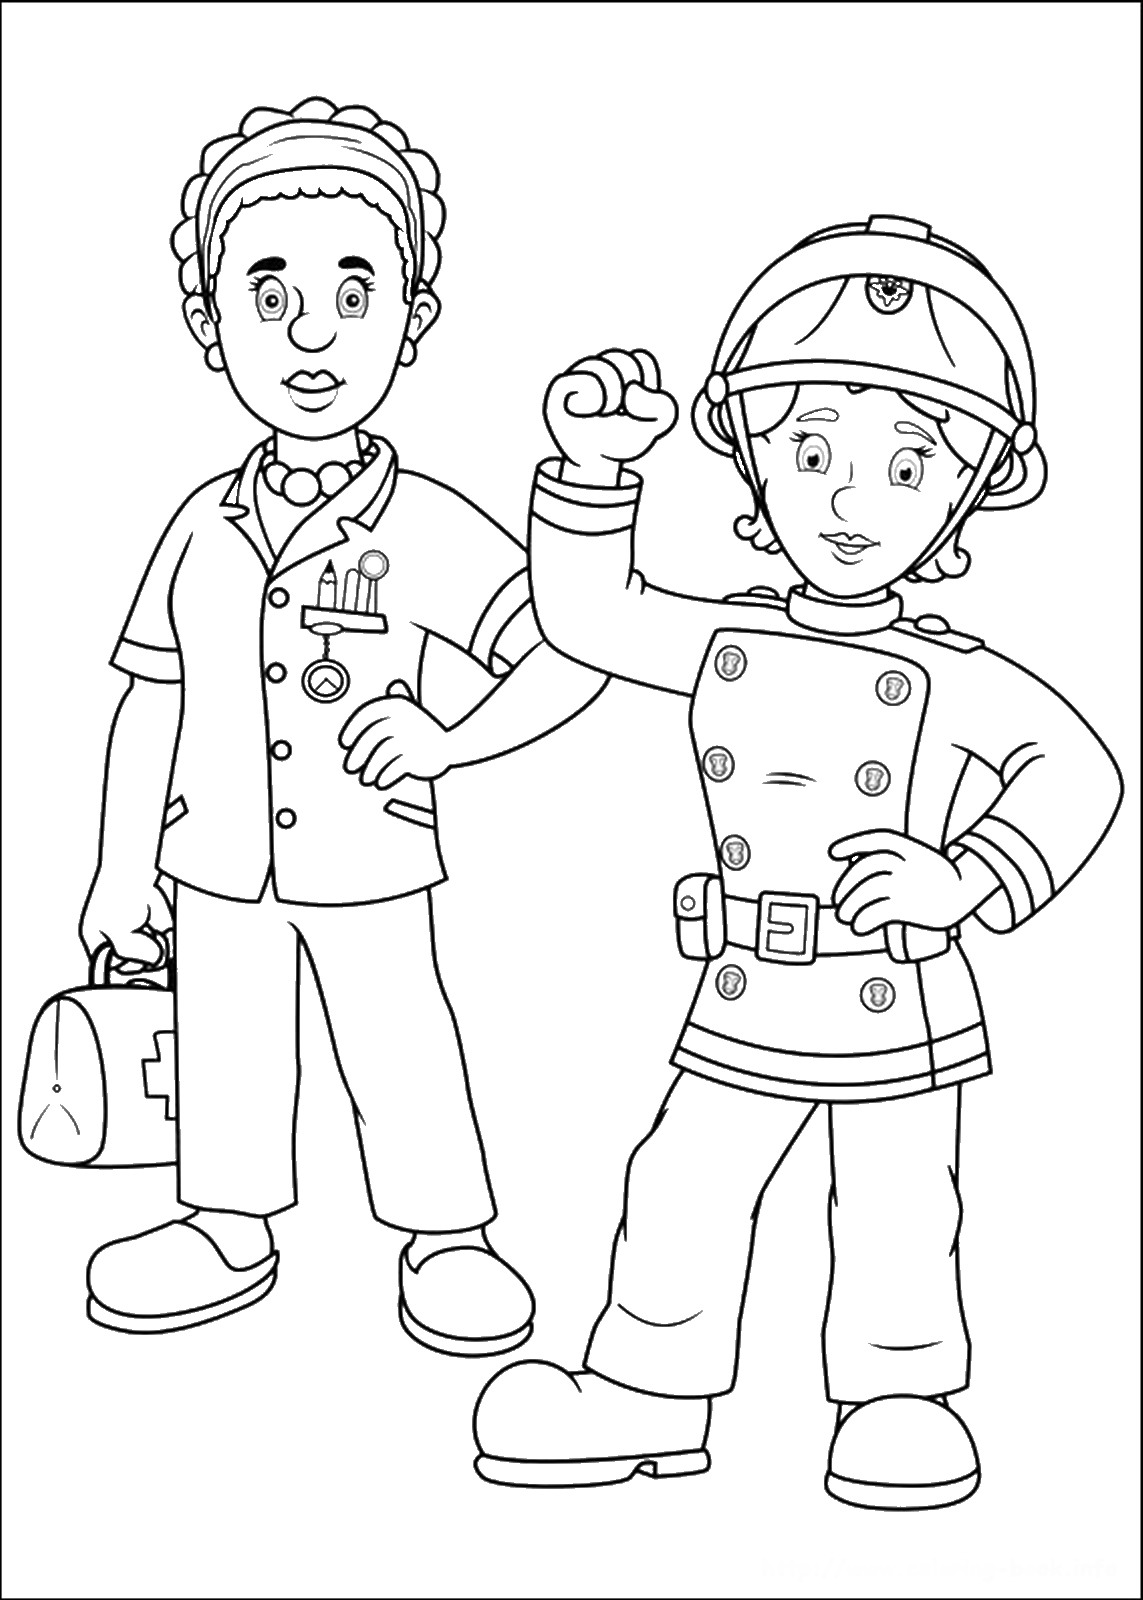 Fireman Sam Coloring Pages Coloring Pages Fireman Sam Coloring Pages